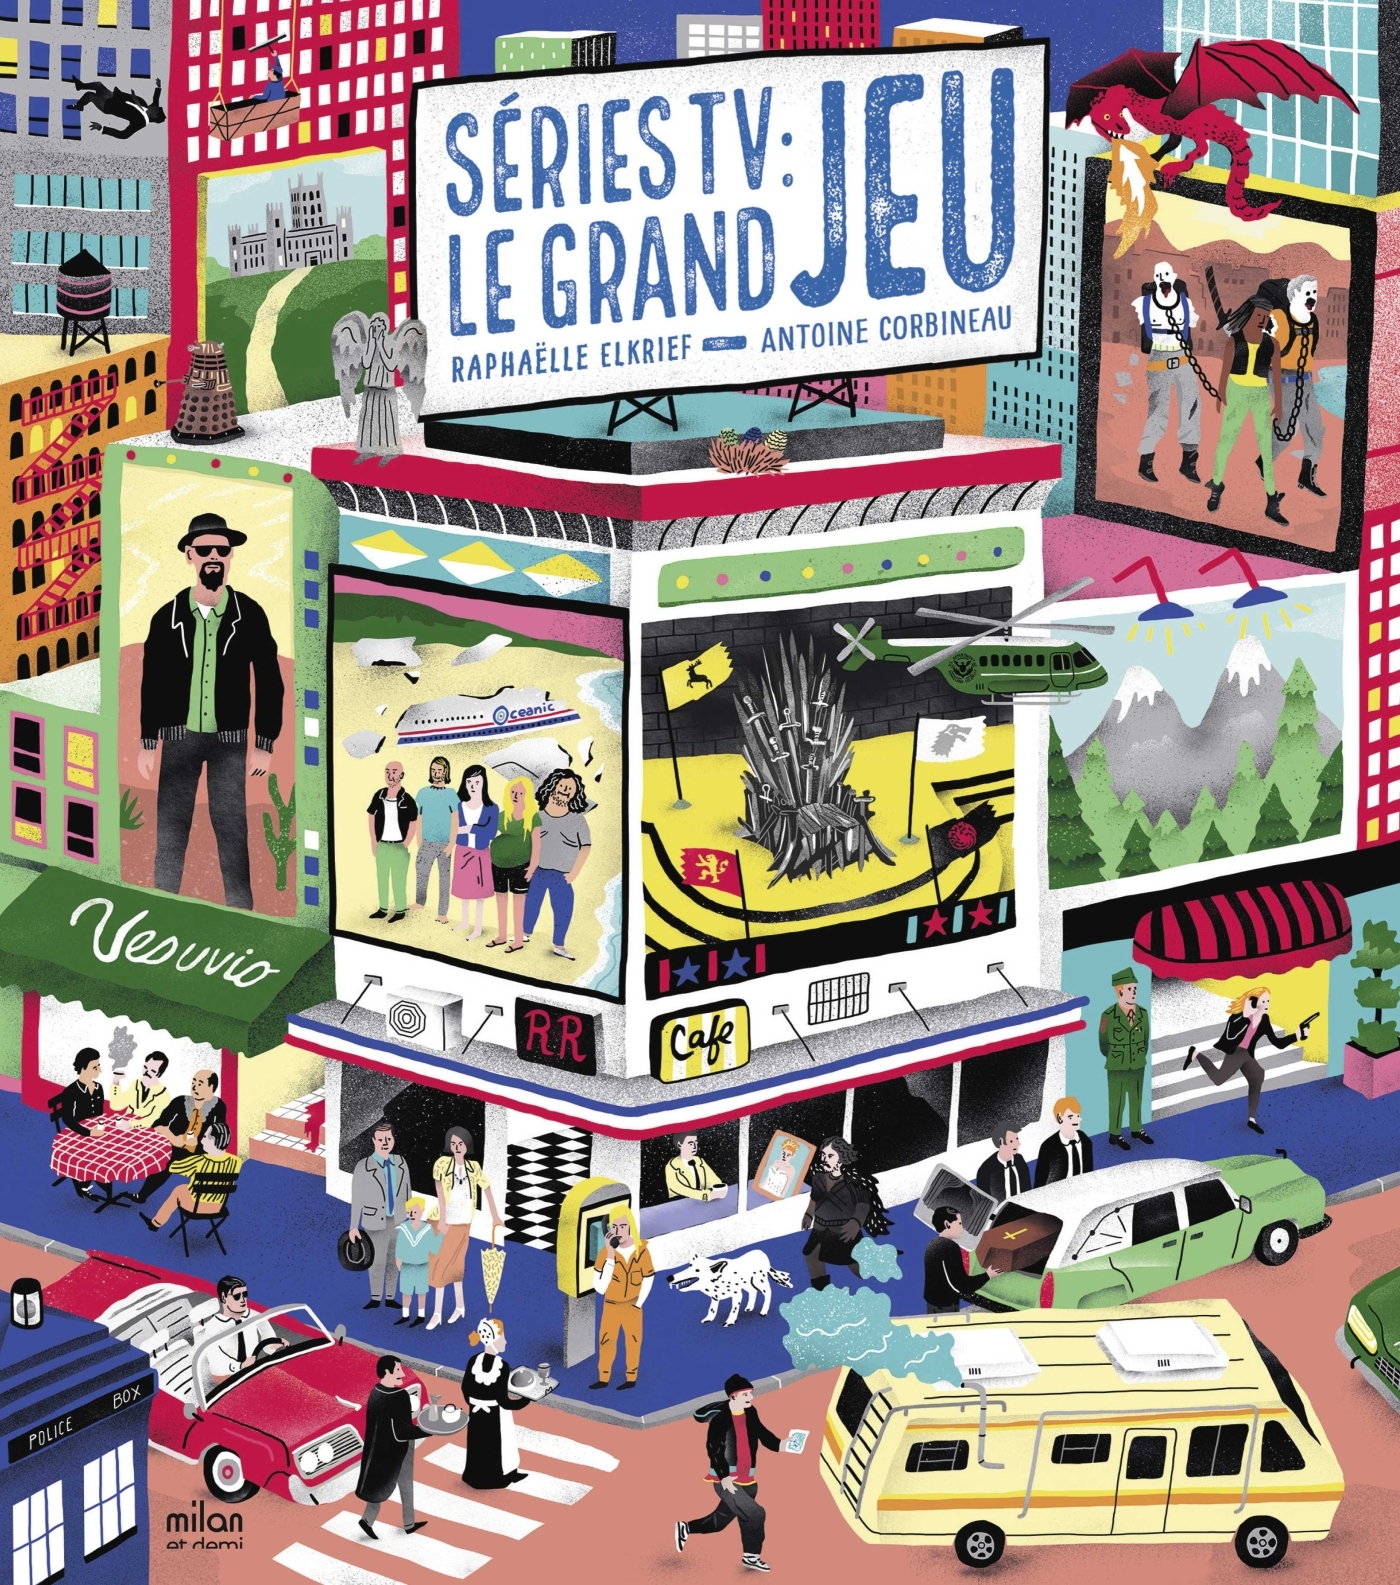 SERIES TV : LE GRAND JEU